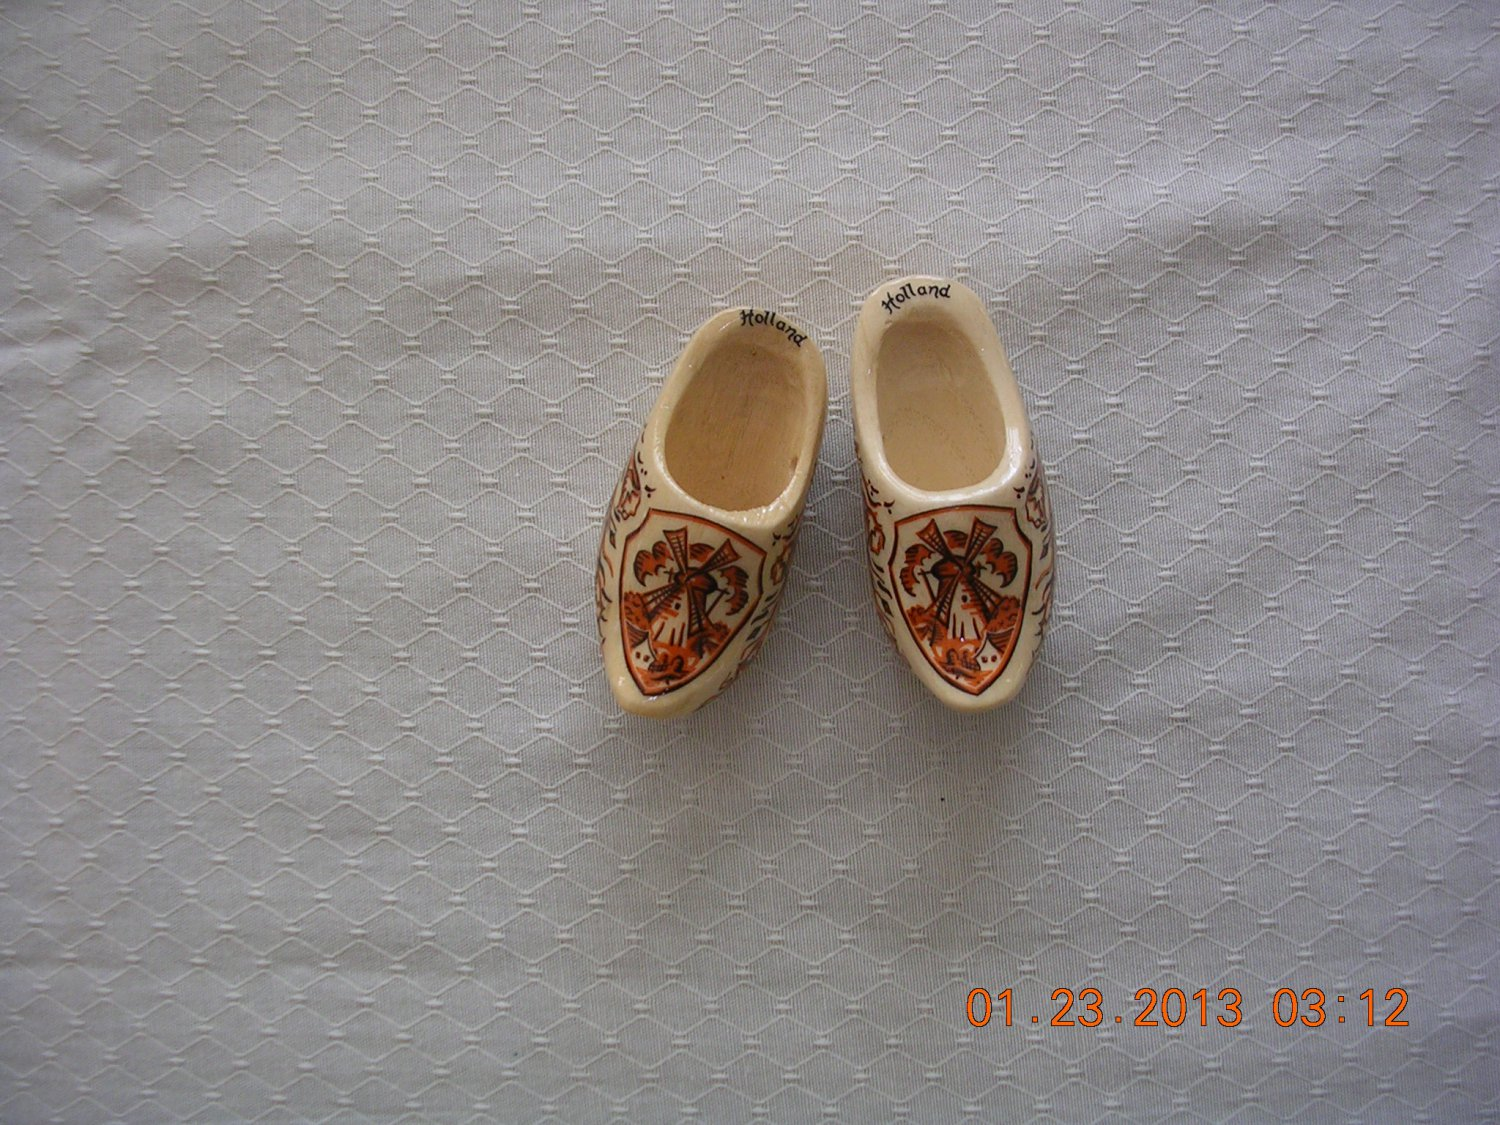 Minature Wooden Shoes From Holland, Price Includes S&H